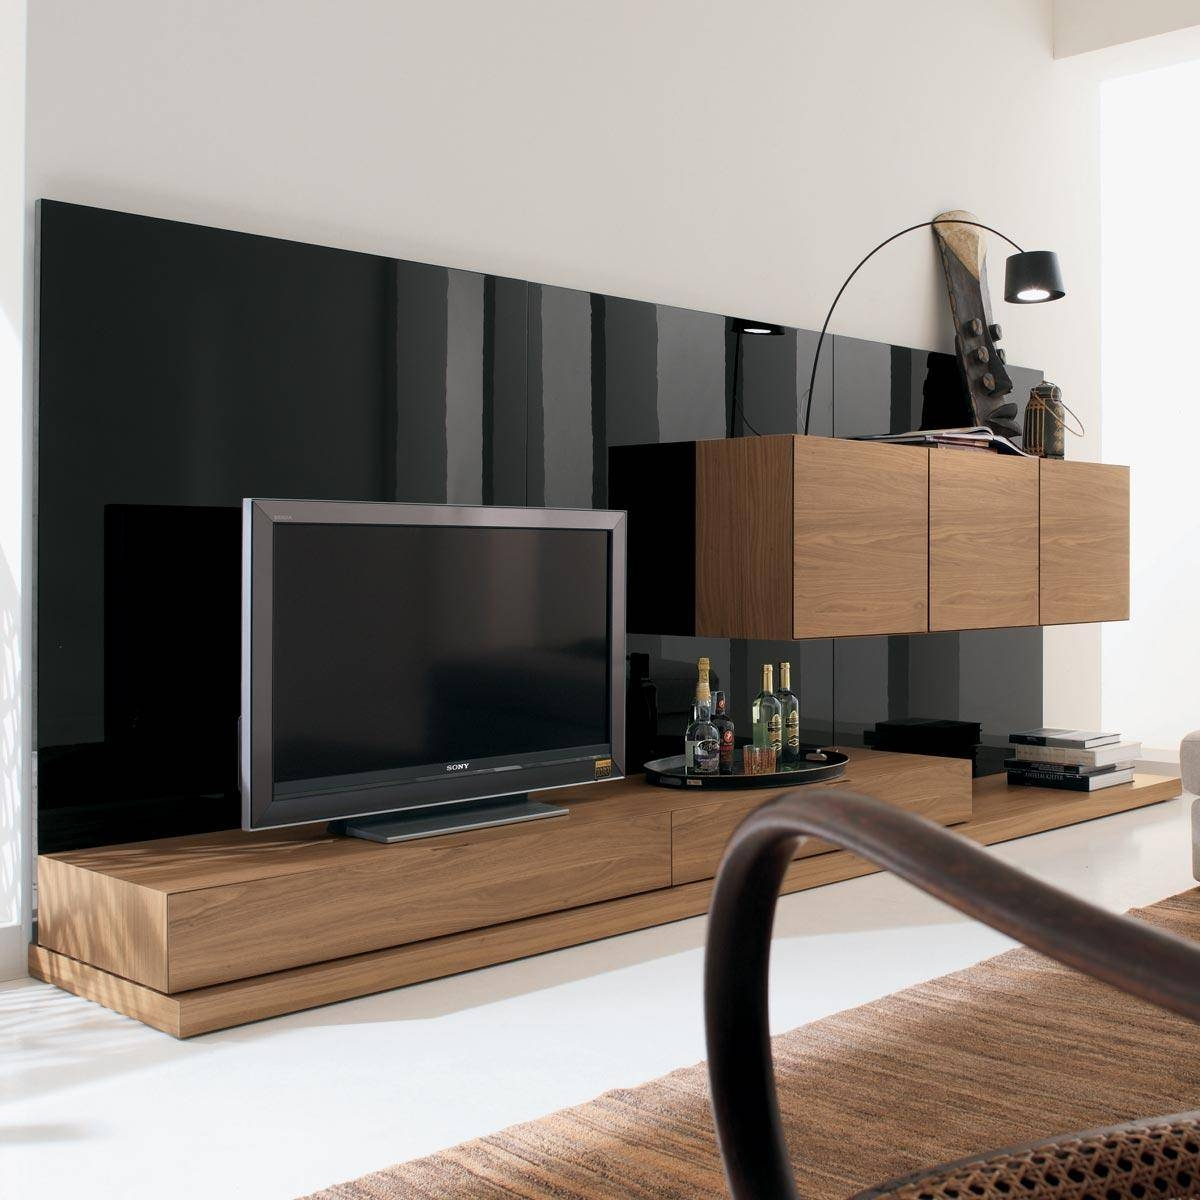 Solid Wood Tv Stand Also Long Tv Stand And Black Wall Living Room pertaining to Contemporary Tv Cabinets (Image 14 of 15)